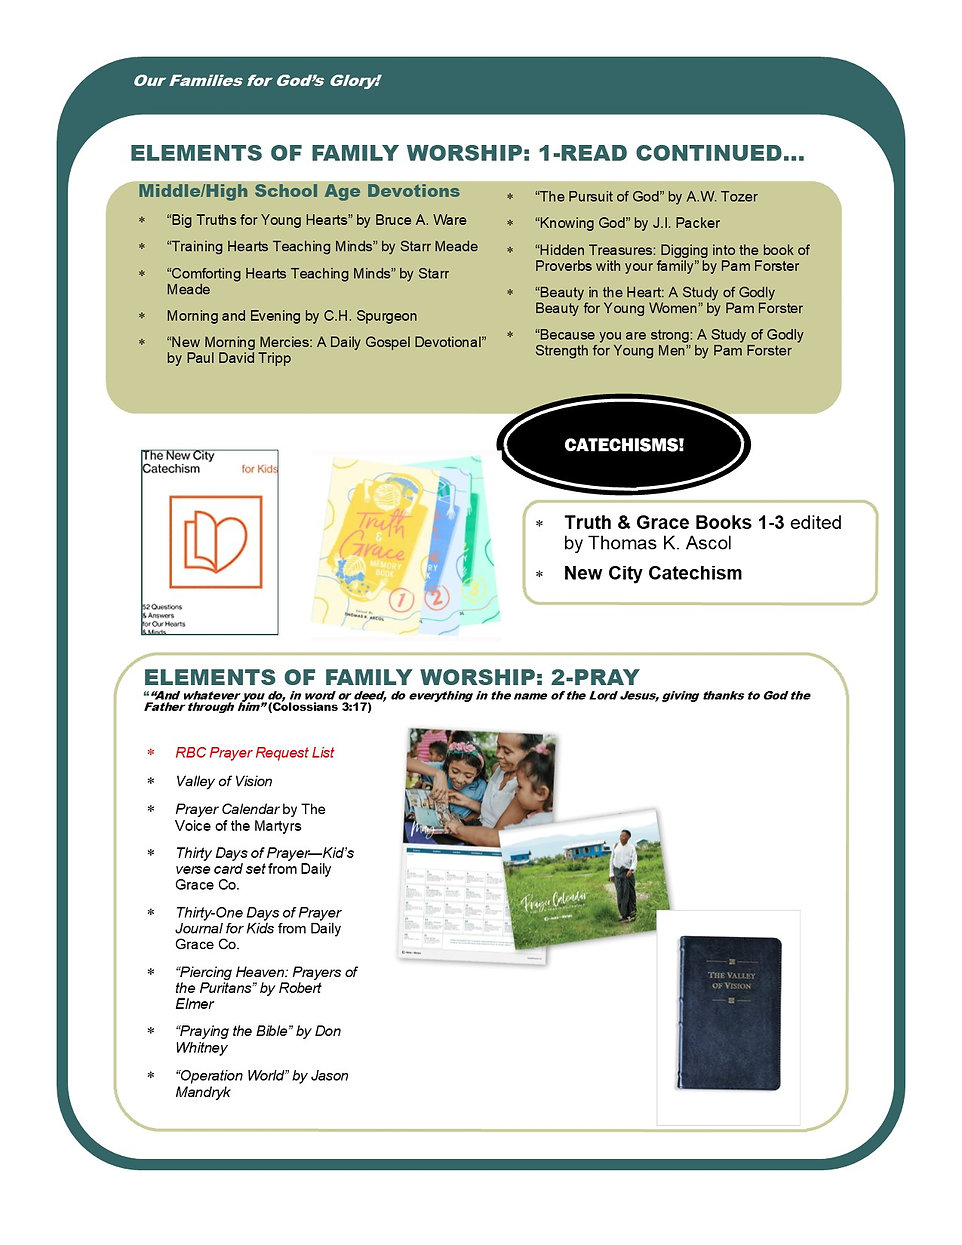 Family Worship Resources2.jpg